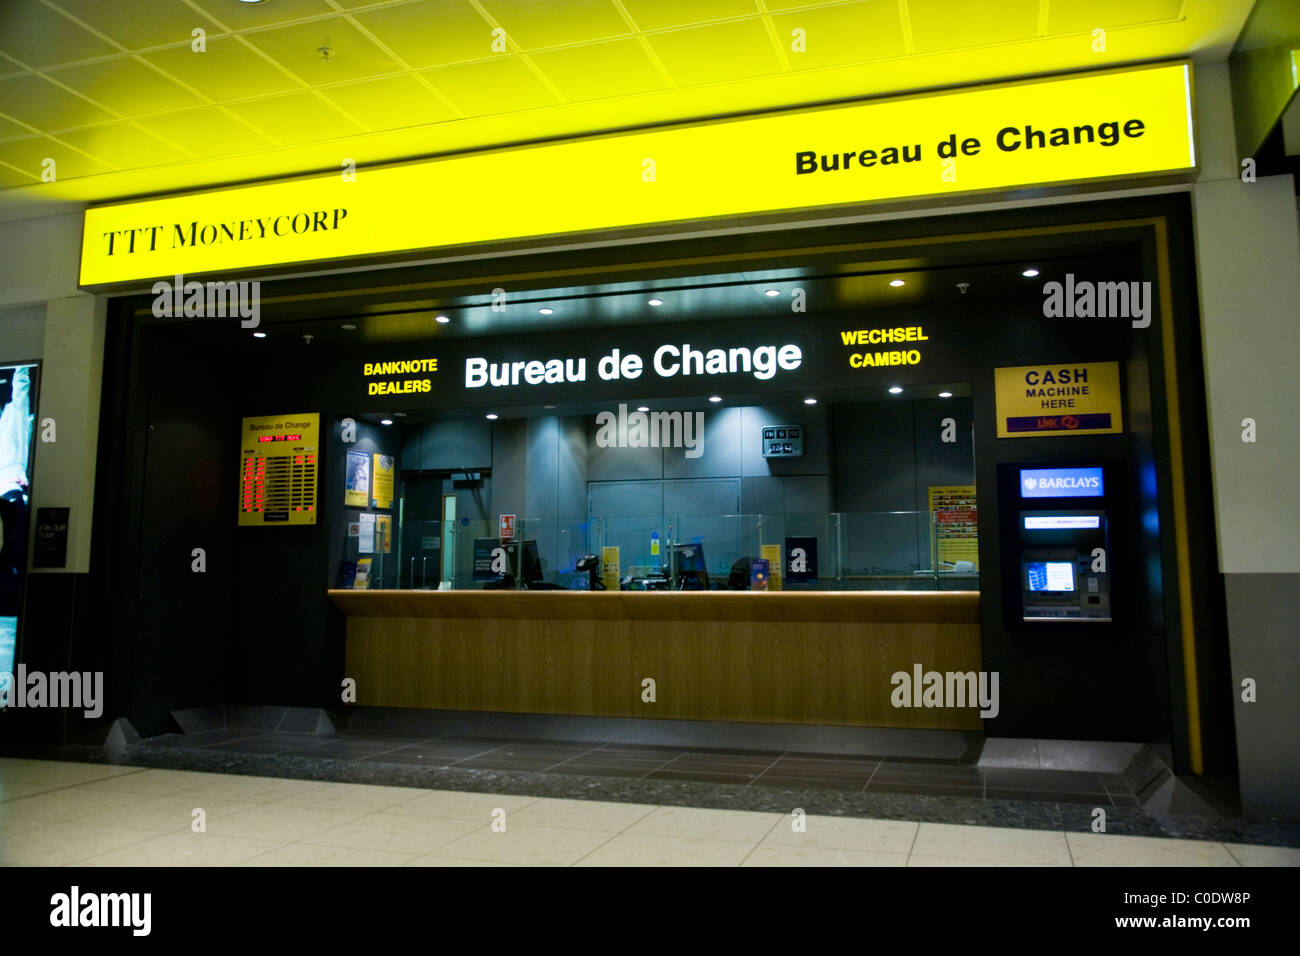 Ttt stock photos ttt stock images alamy - Gatwick airport bureau de change ...